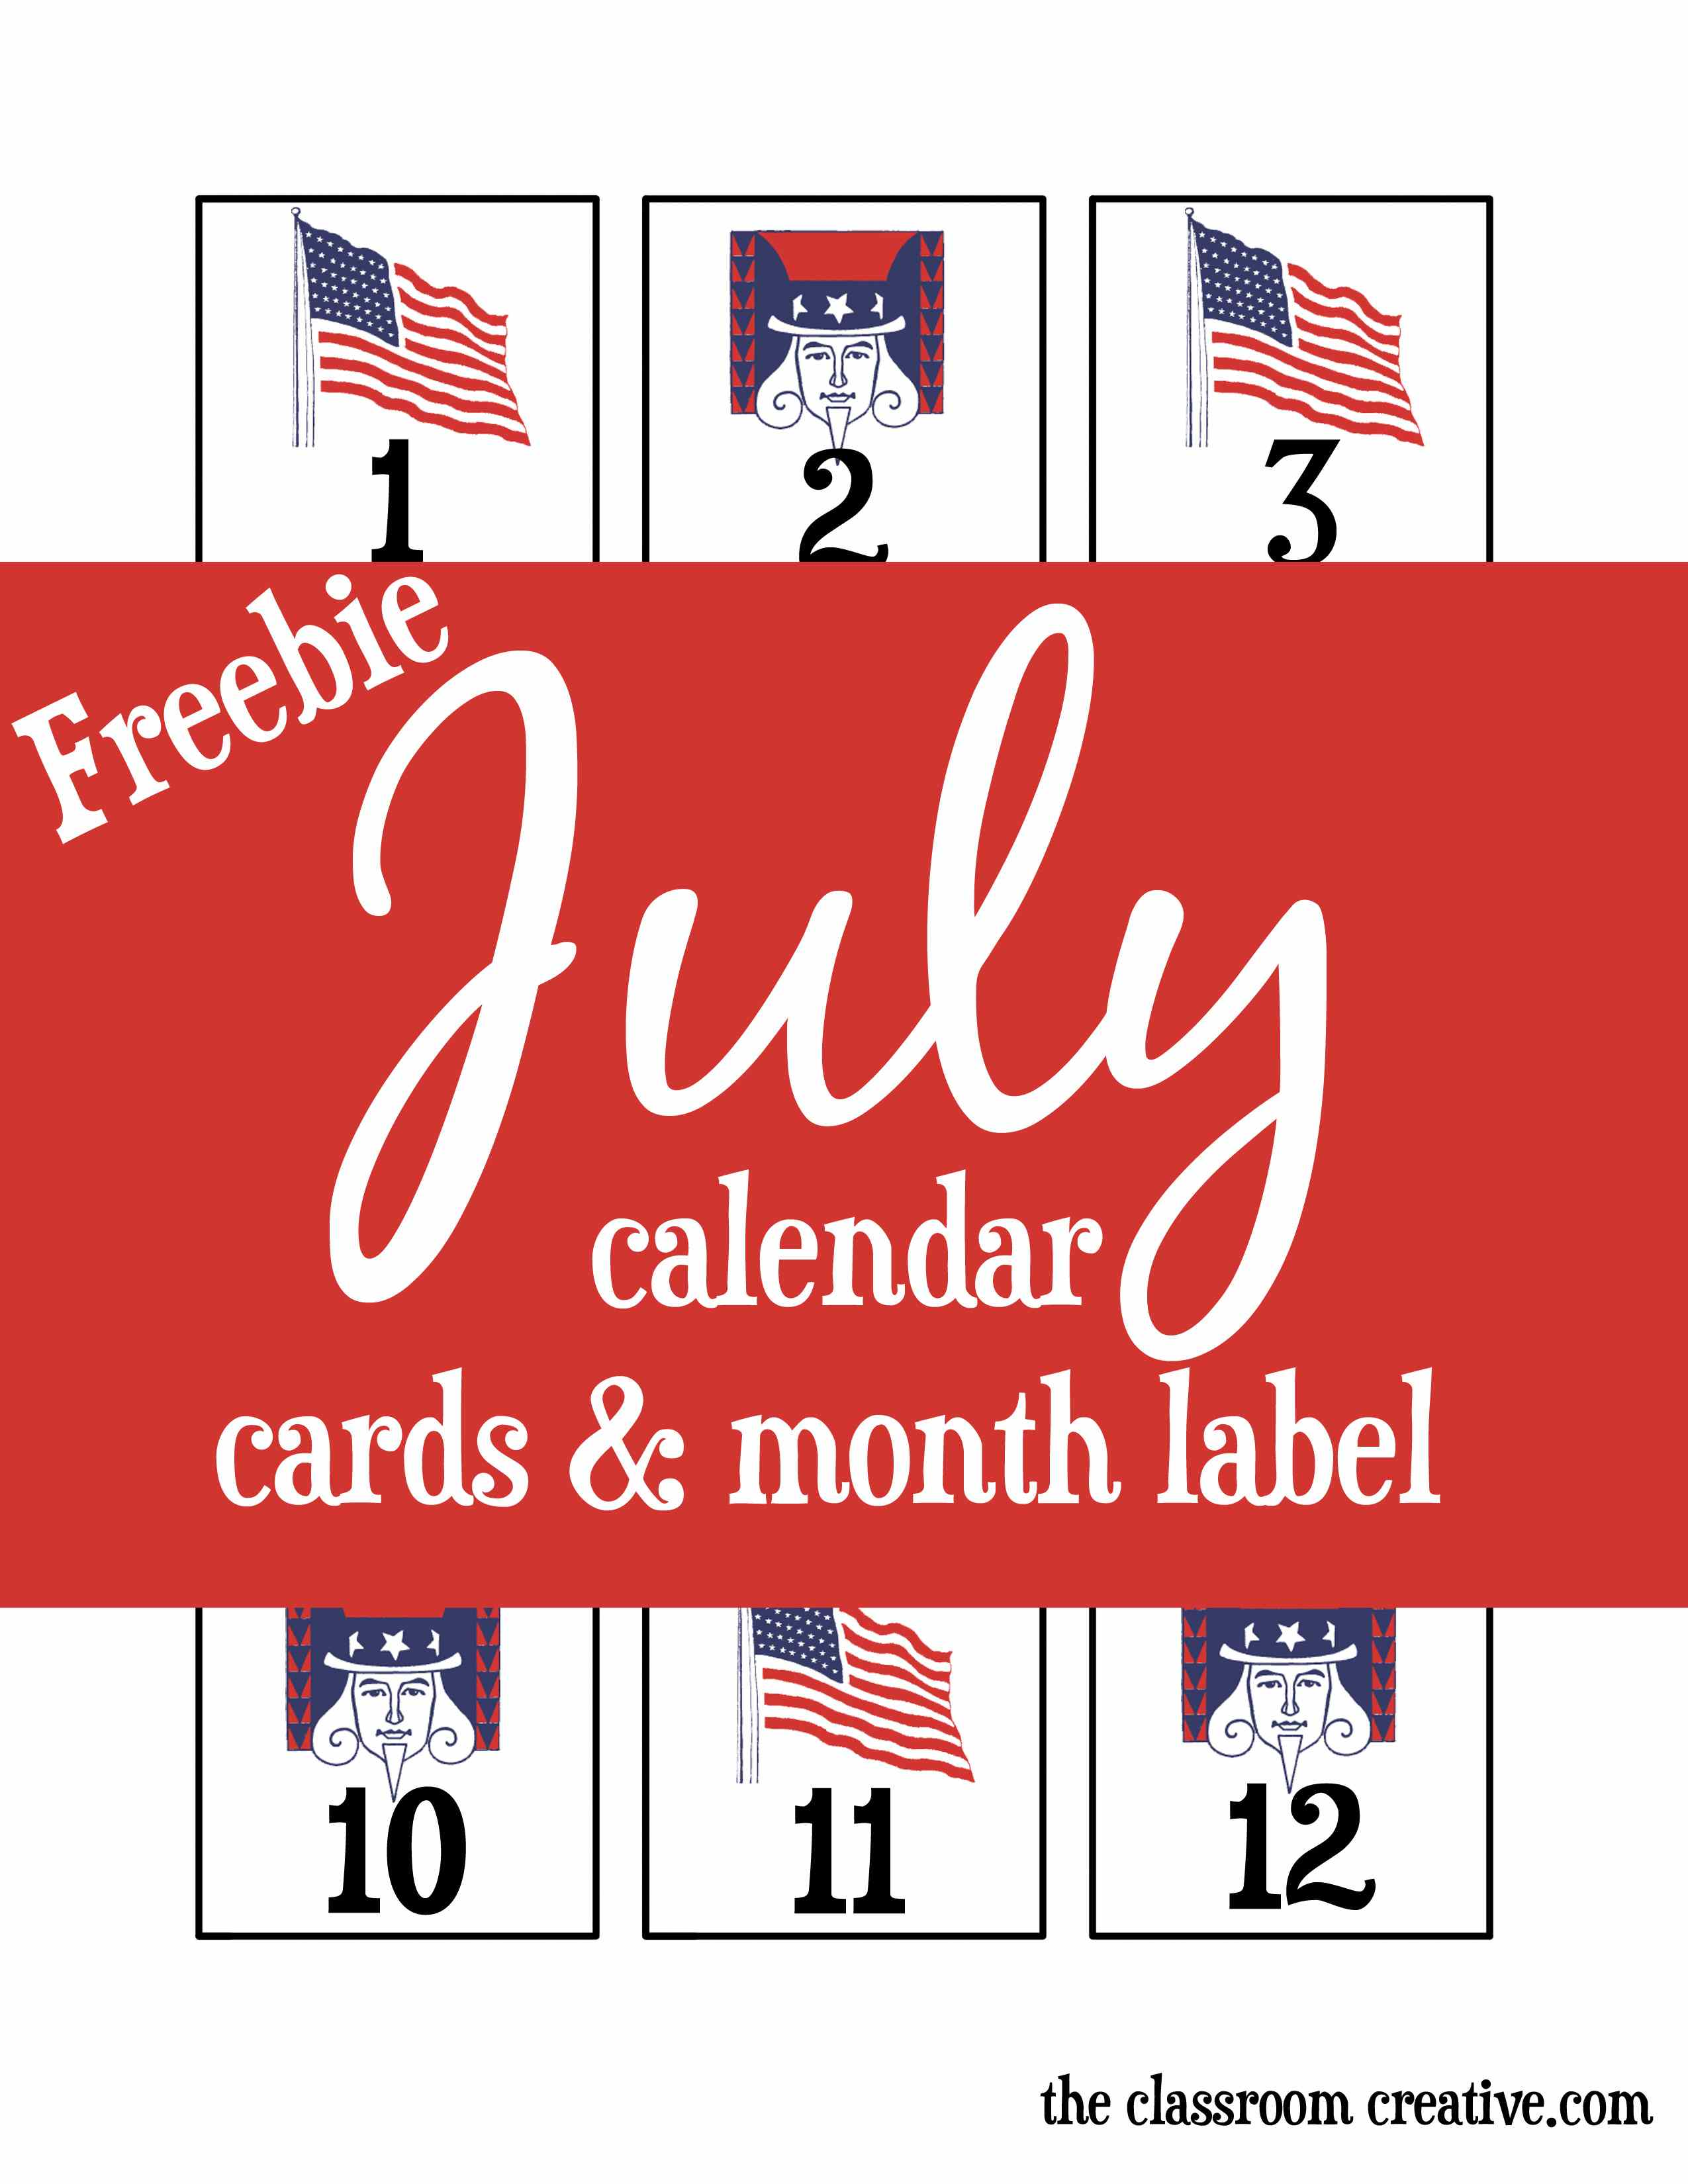 Free Printable July Calendar Cards And Month Label